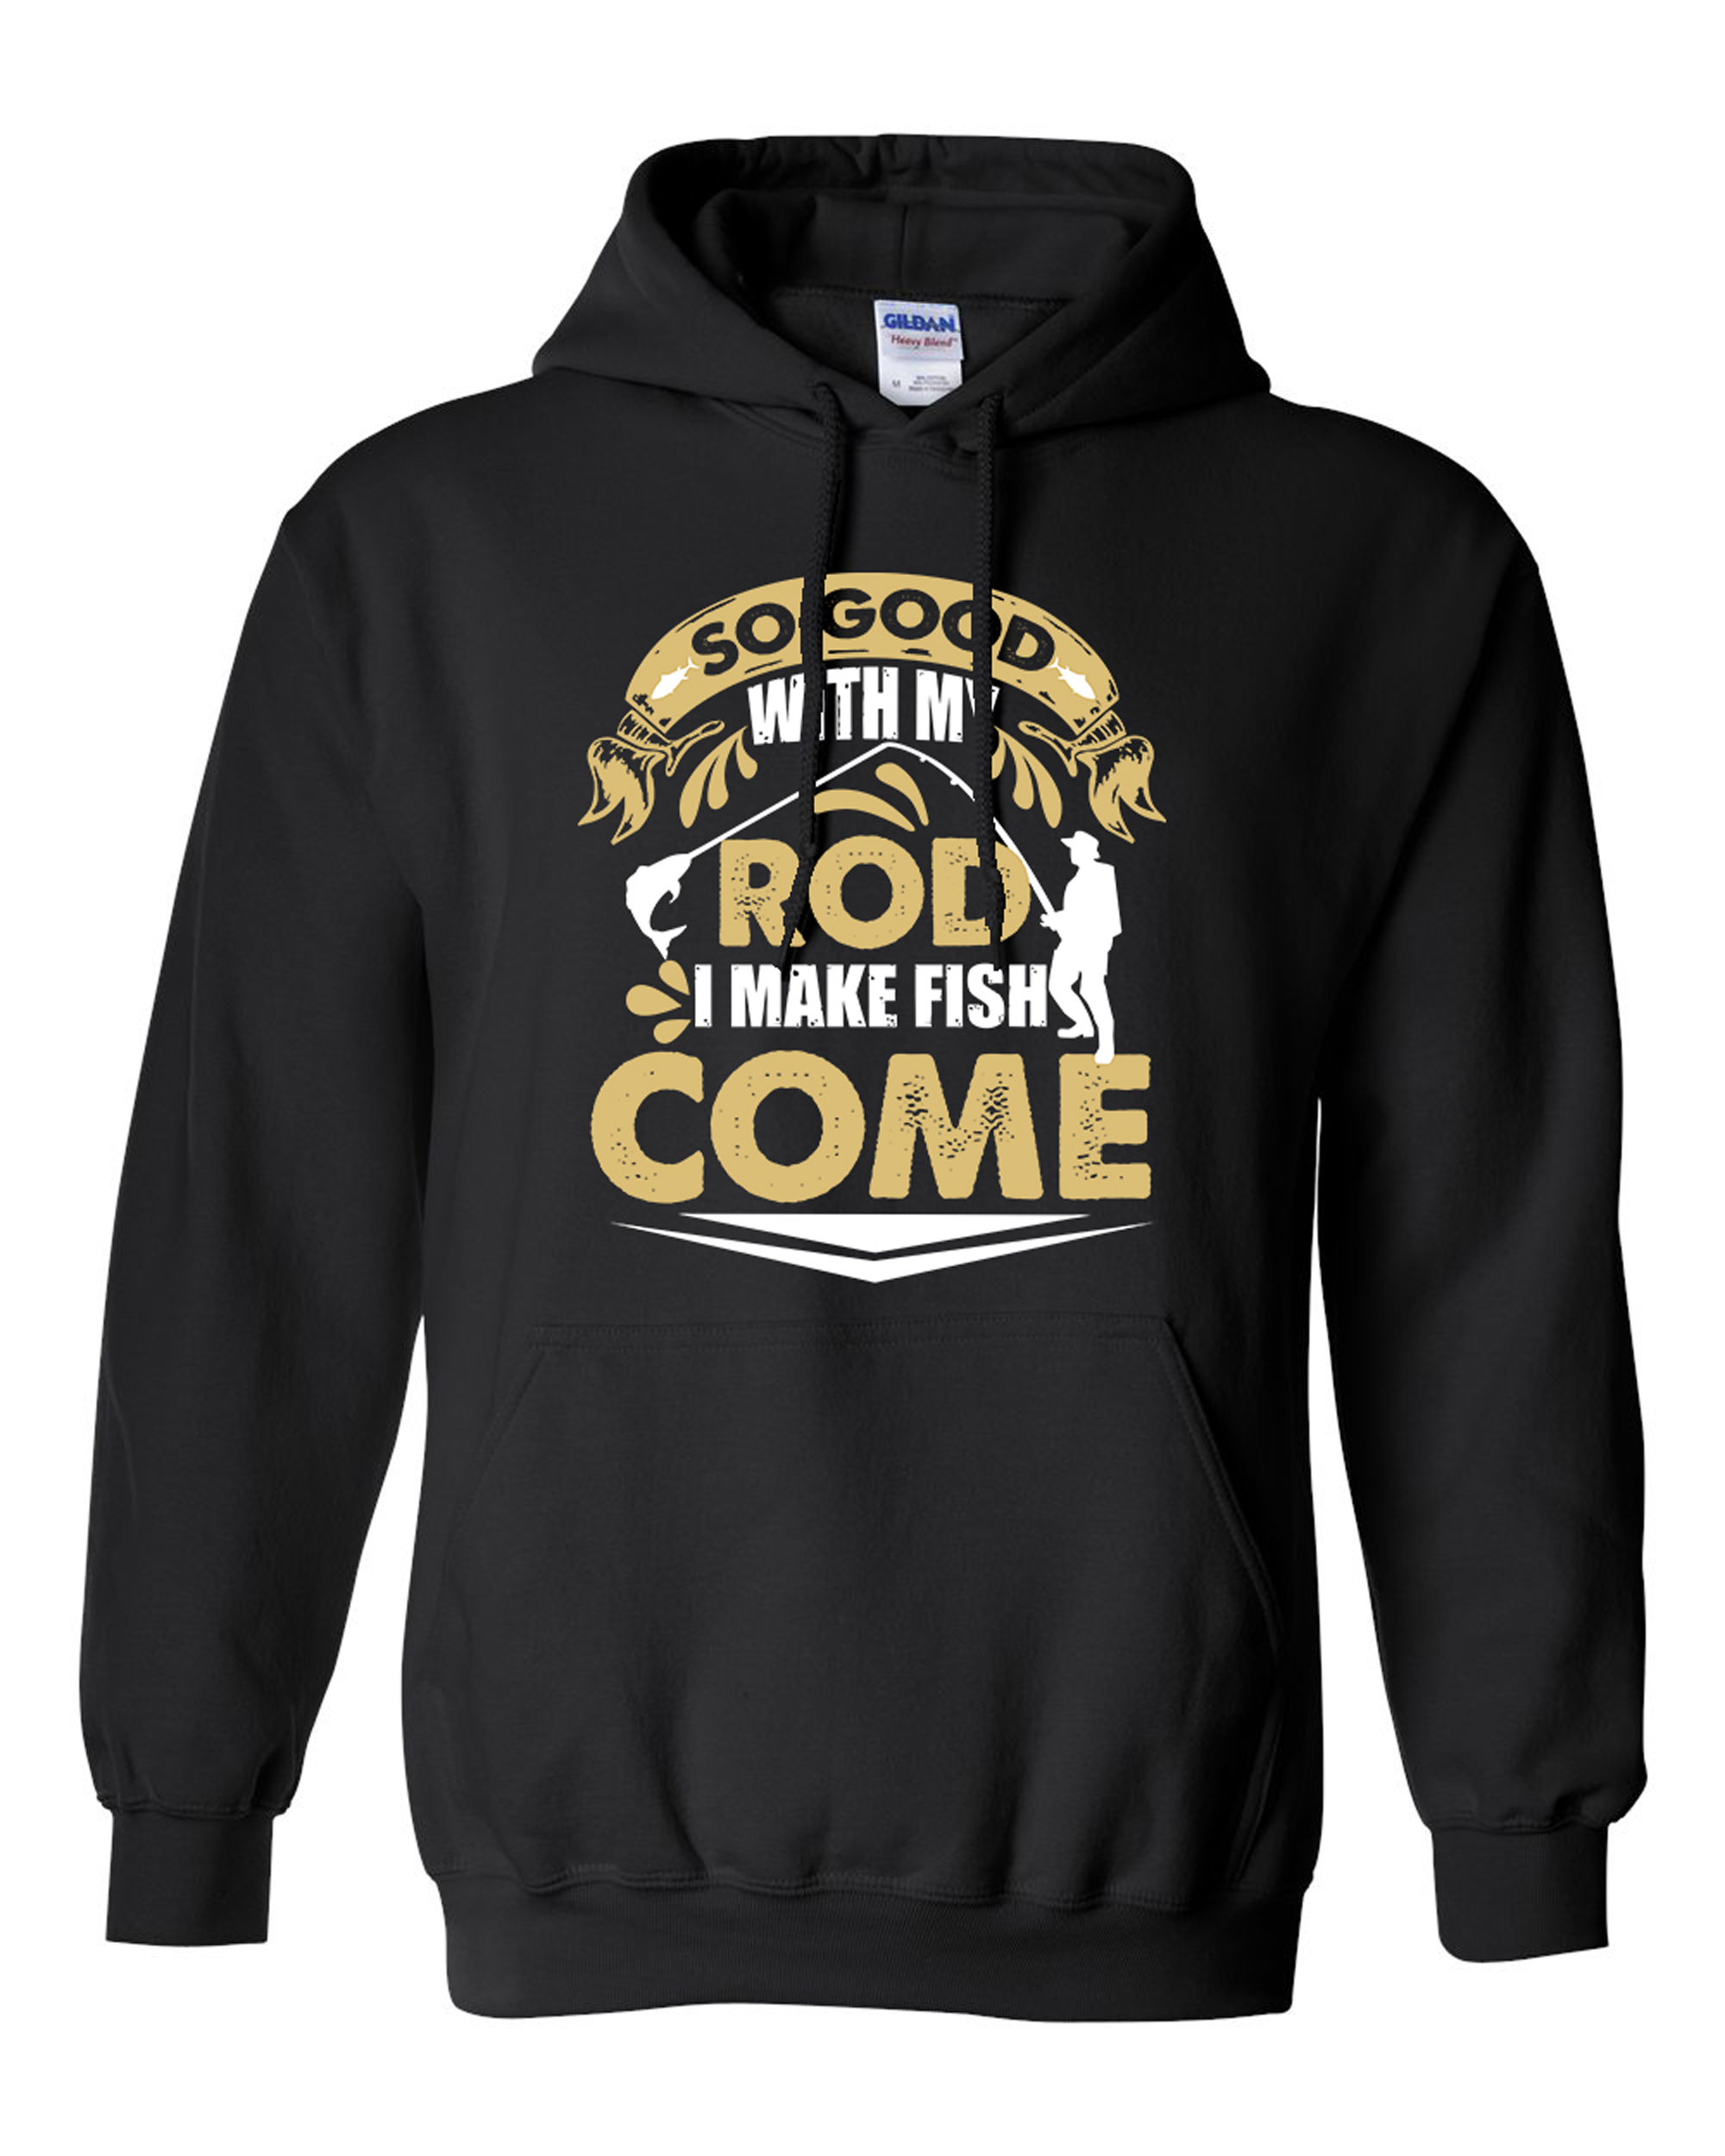 So Good With My Rod I Make Fish Come Funny DT Sweatshirt Hoodie